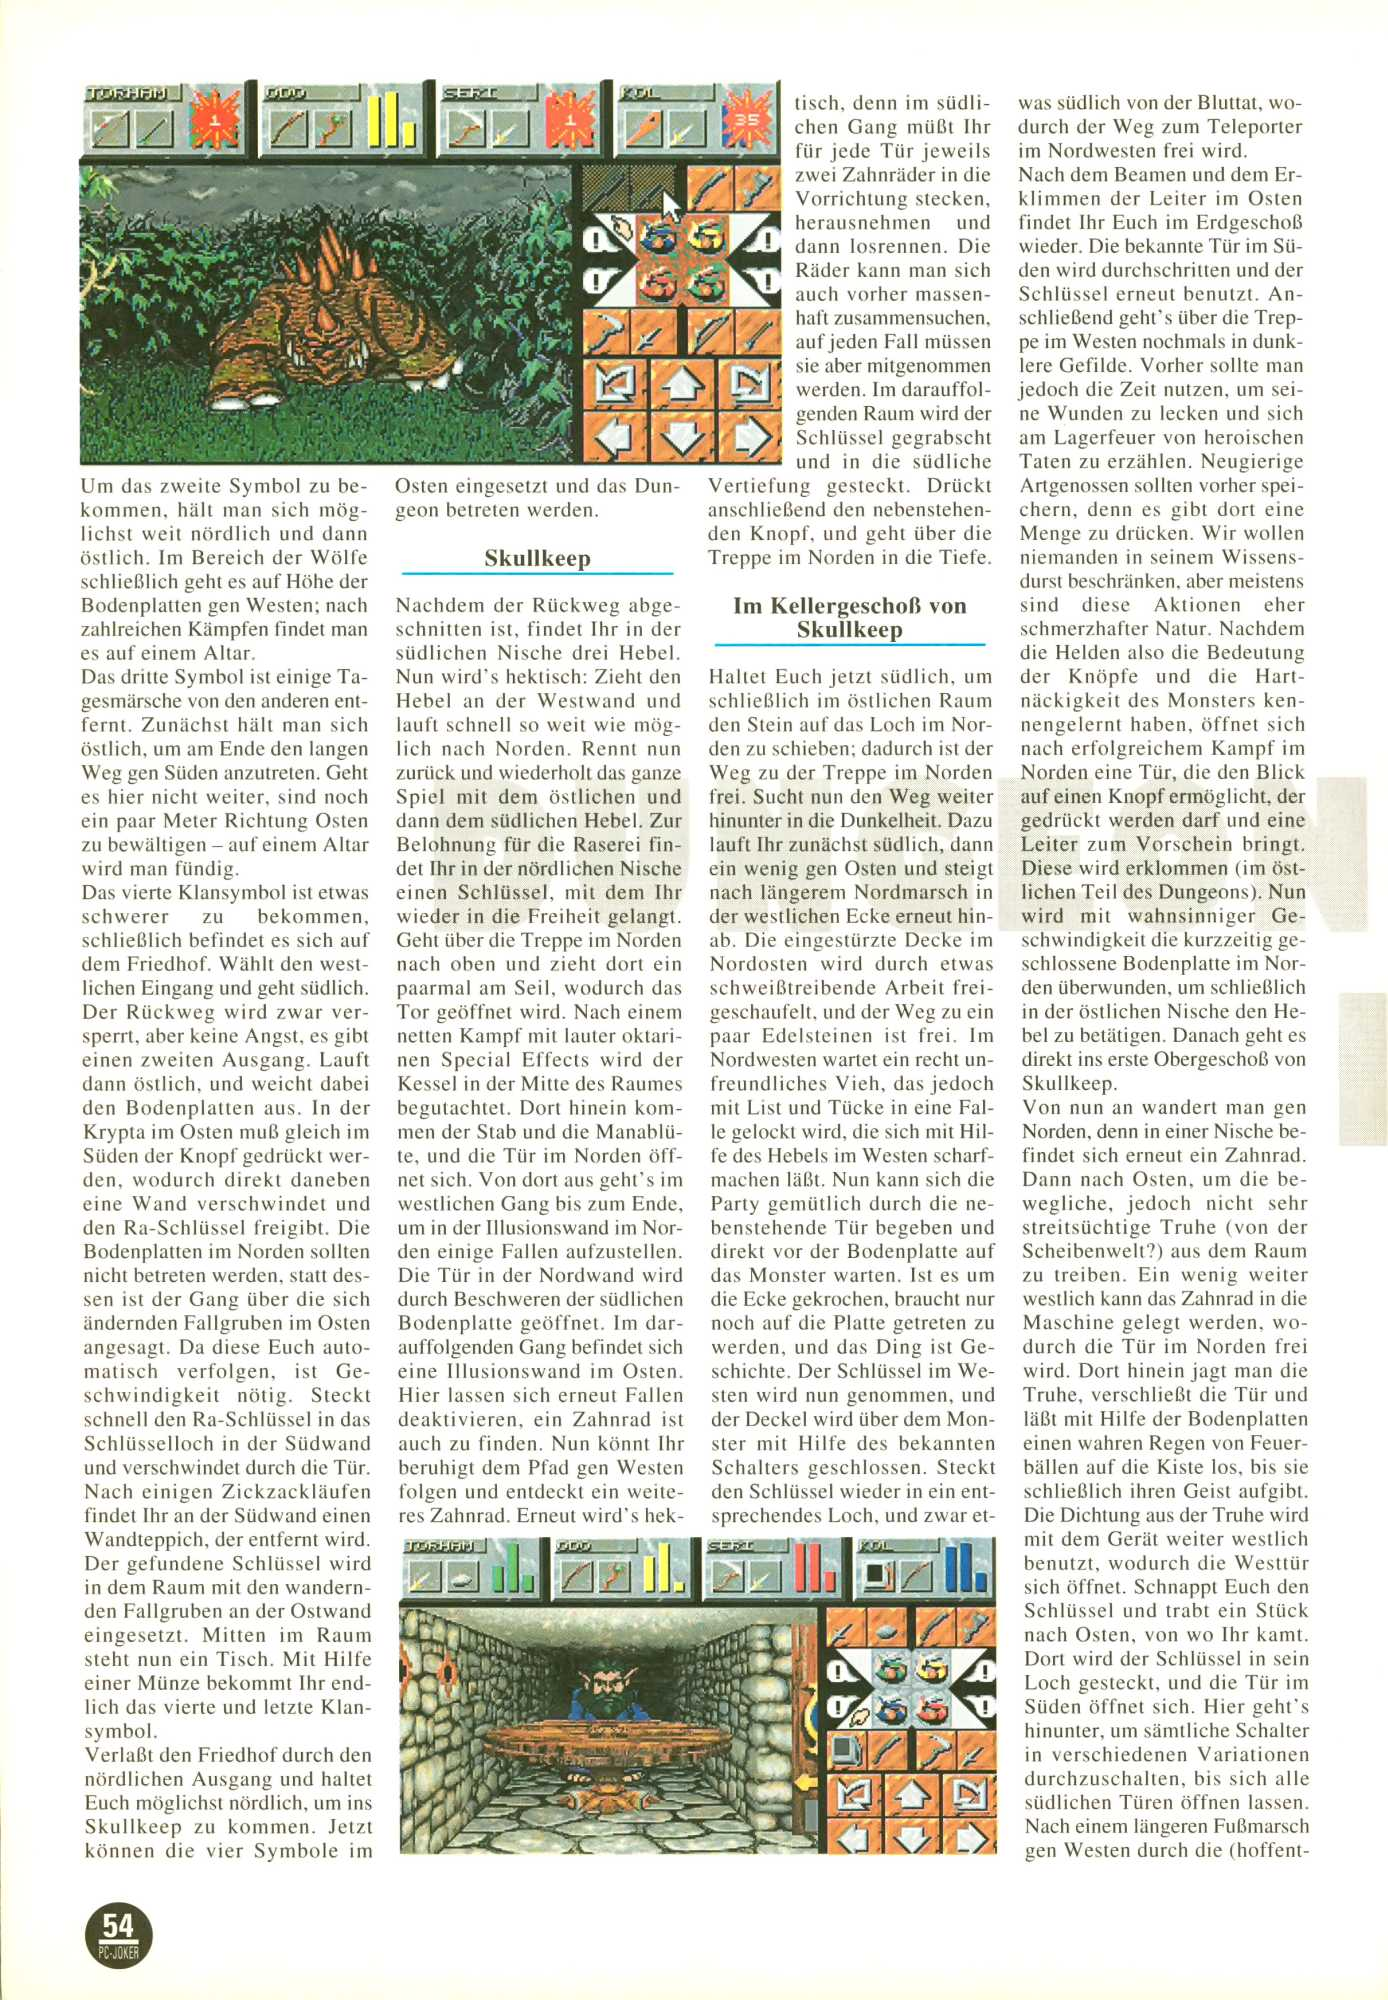 Dungeon Master II for PC Guide published in German magazine 'PC Joker', November 1995, Page 54